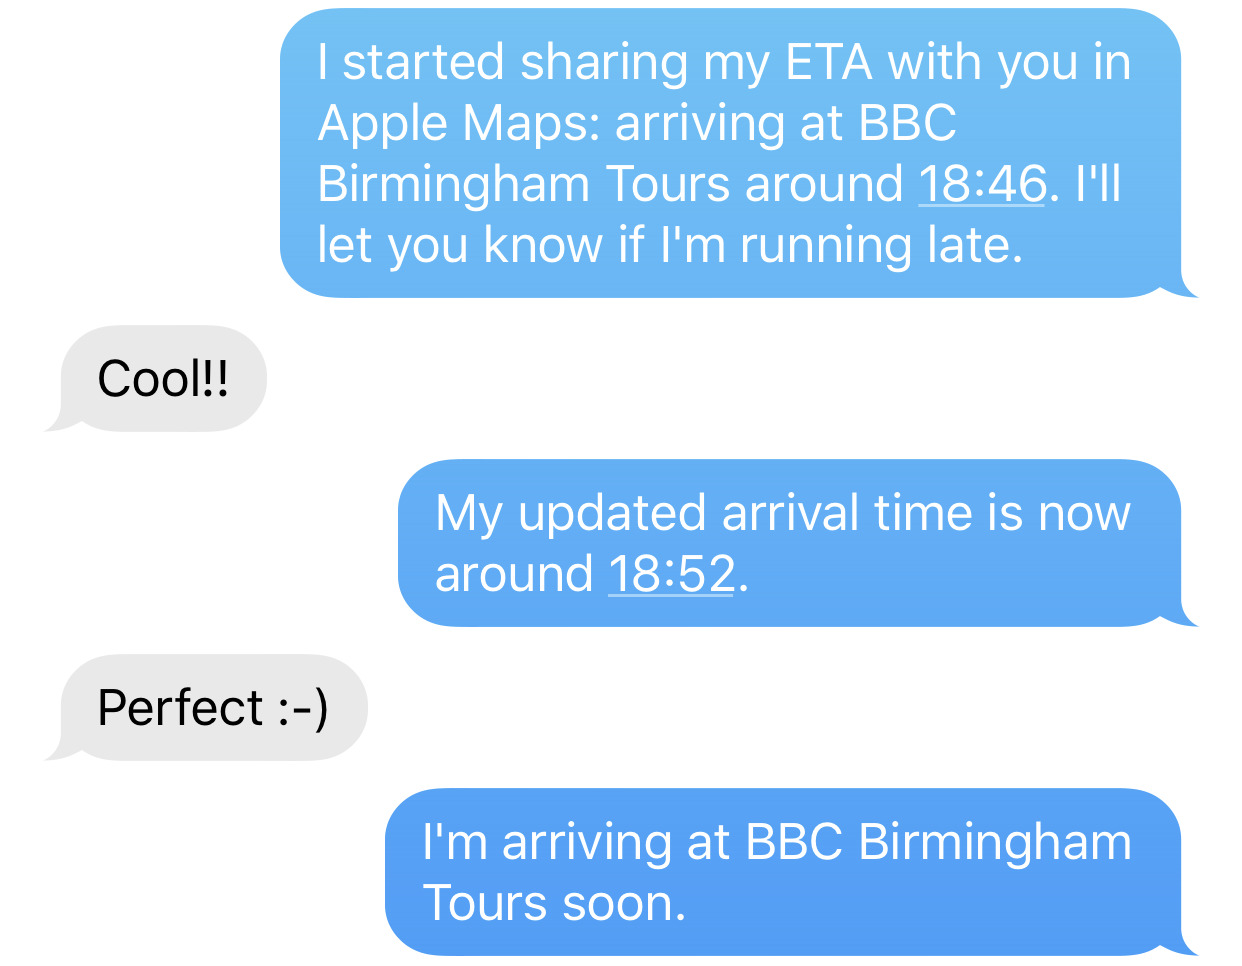 Each of the messages in blue bubbles was created and sent automatically by iOS 13.1's Share ETA function.